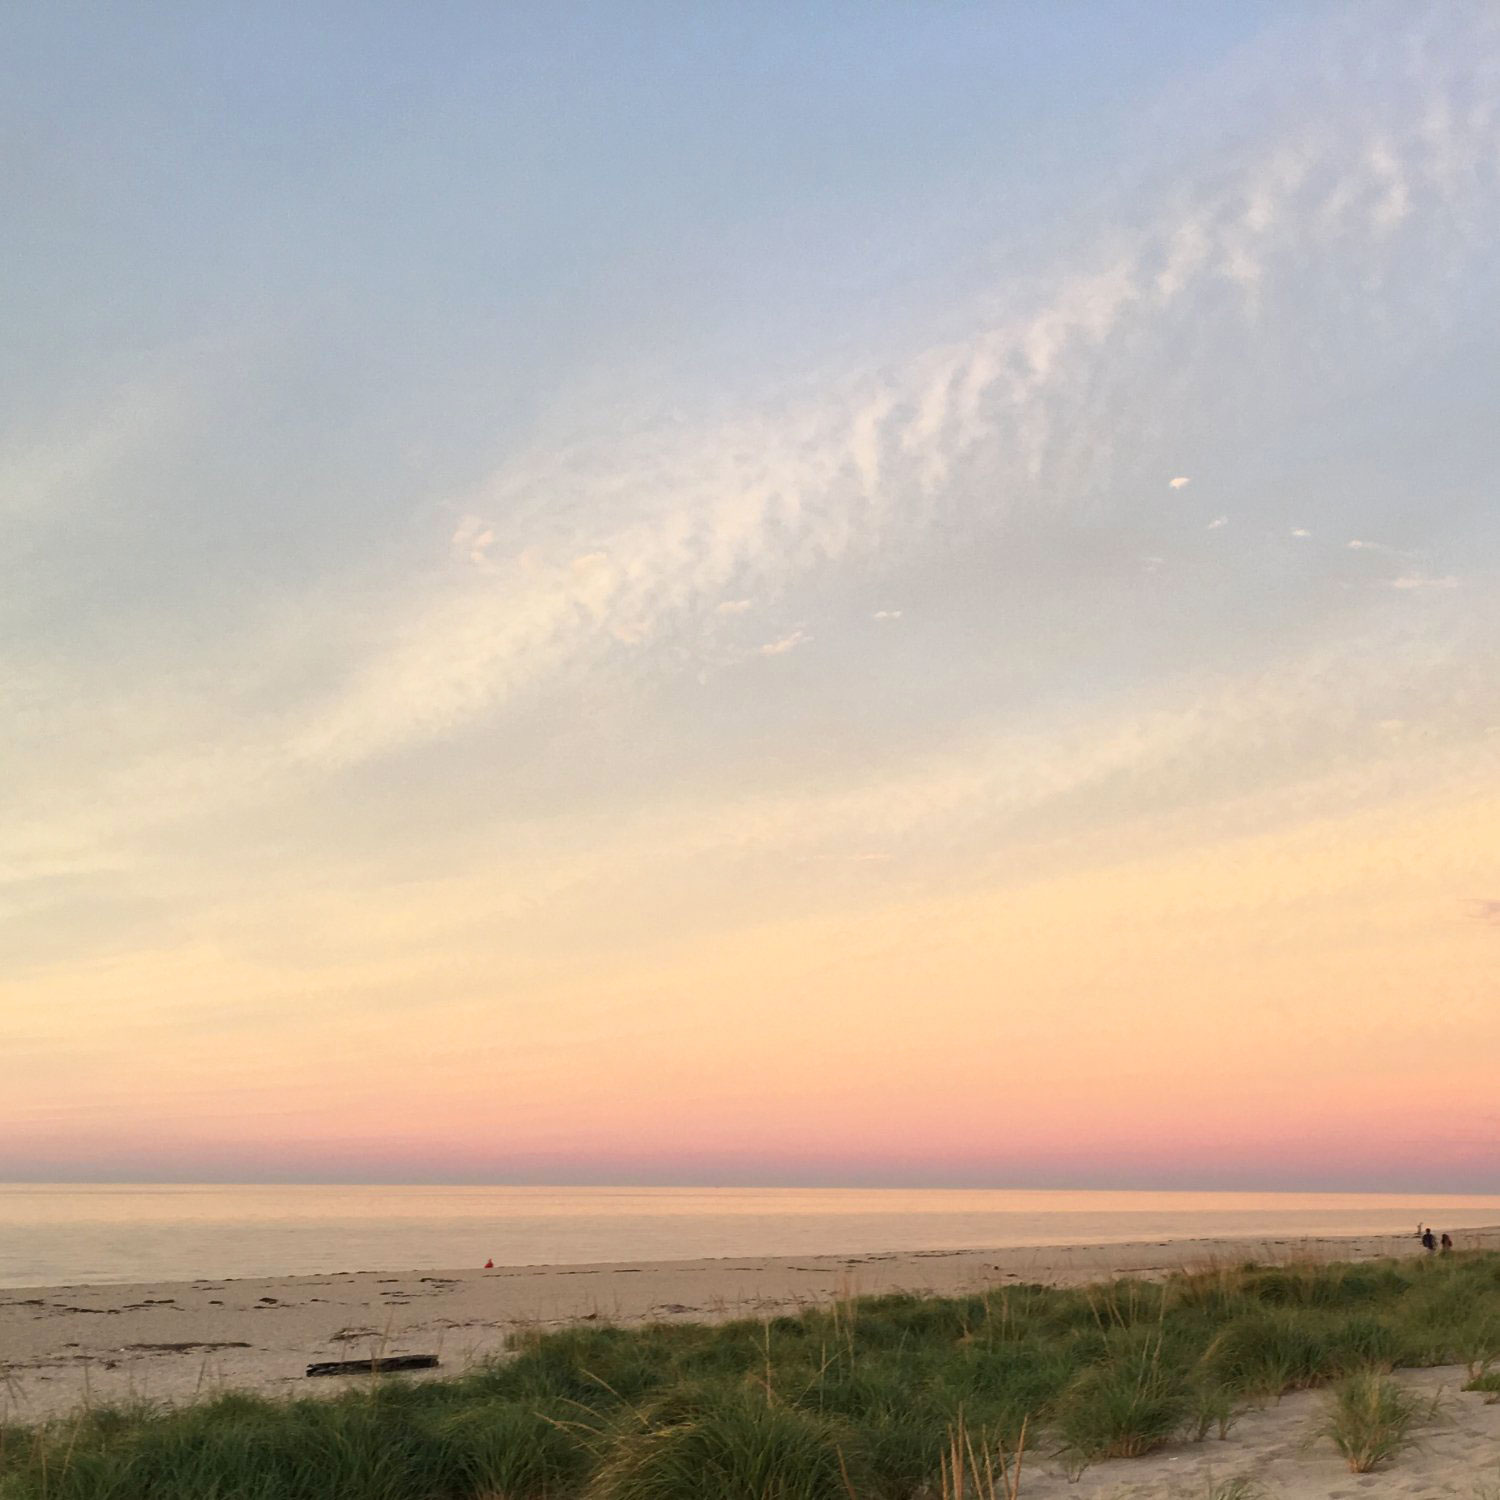 This Cape Cod beach is gloriously sunny, with excellent whale watching and a location on the tip of the Cape that gives it pristine bay and ocean views.